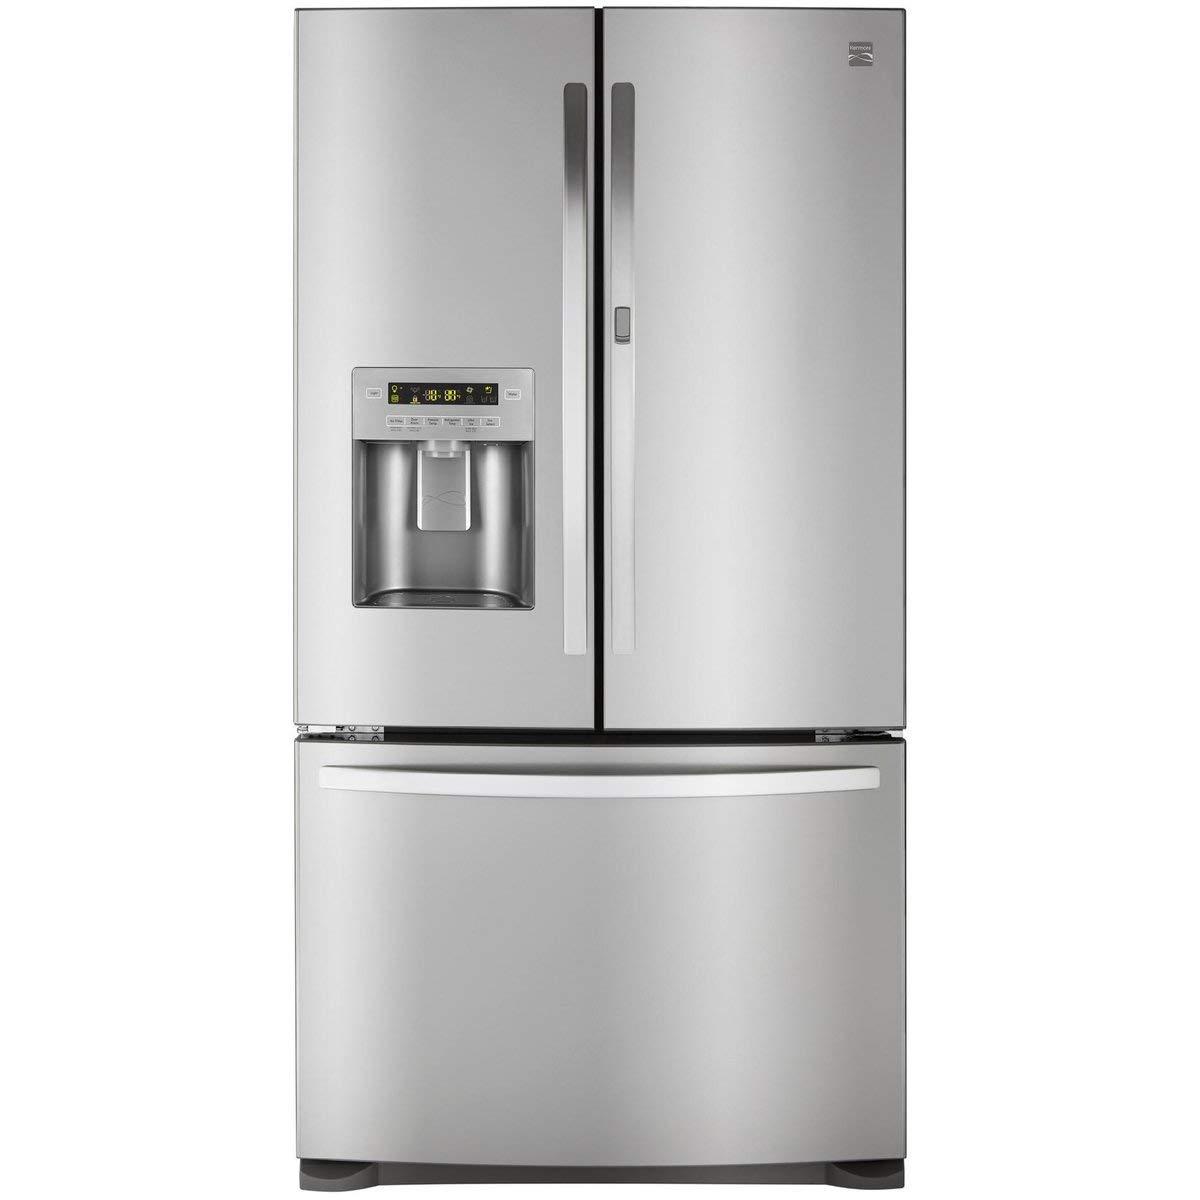 Kenmore 73063 26.6 cu. ft. French Door Bottom Freezer Refrigerator with Grab-N-Go Door in Stainless Steel, includes delivery and hookup